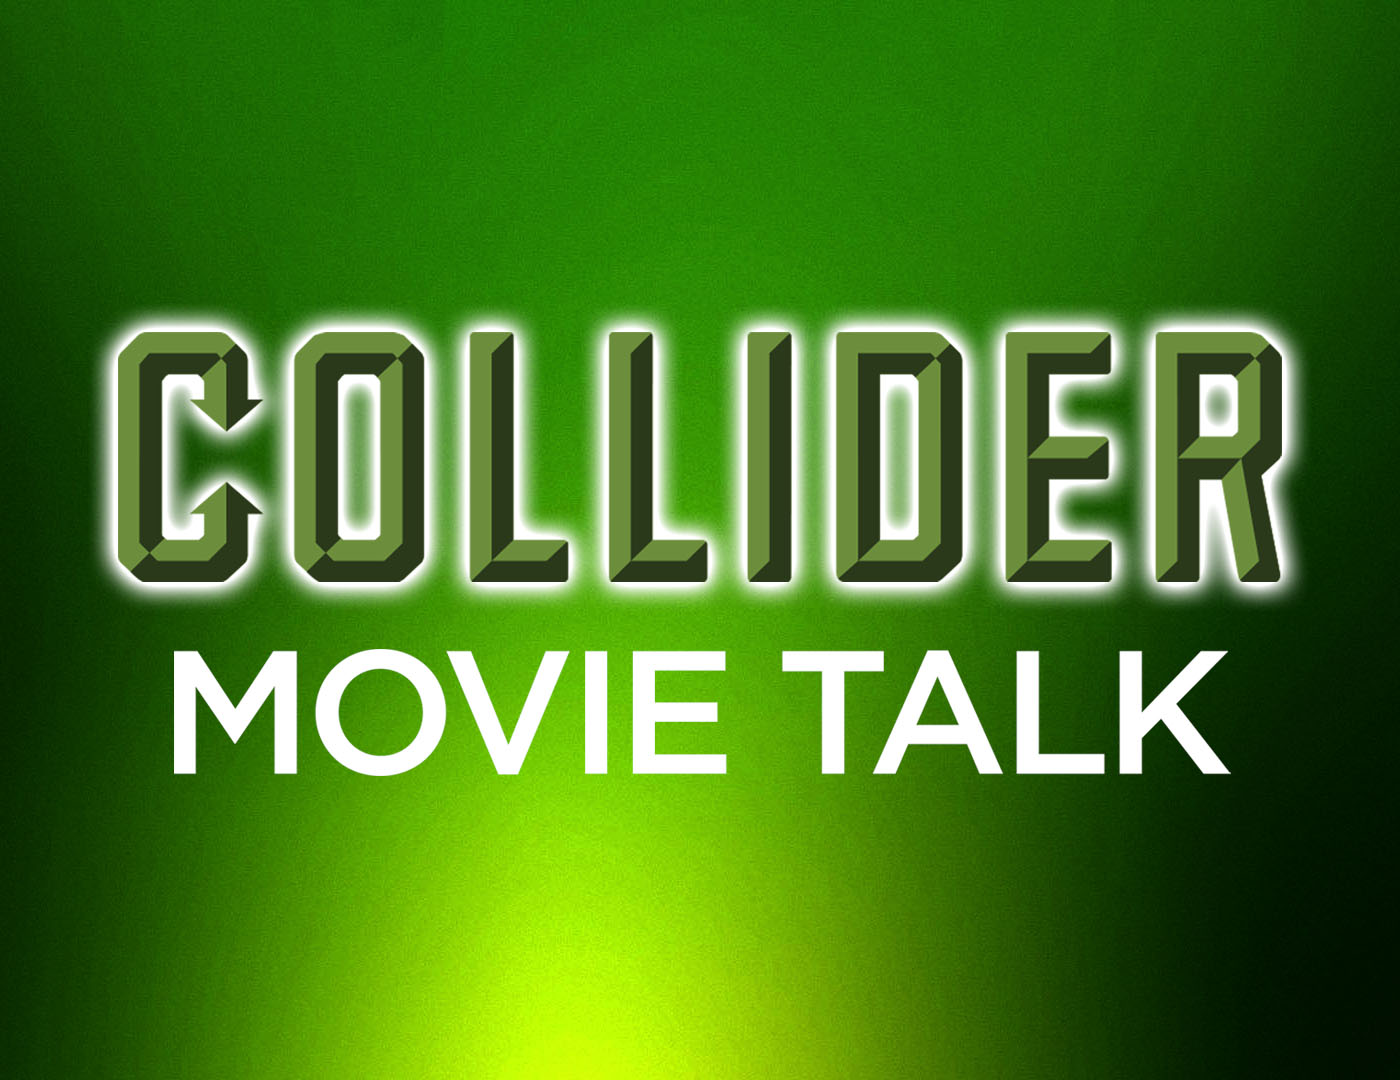 Collider Movie Talk - Wolverine 3 to Receive R Rating, Ben Affleck Joins Justice League as Executive Producer